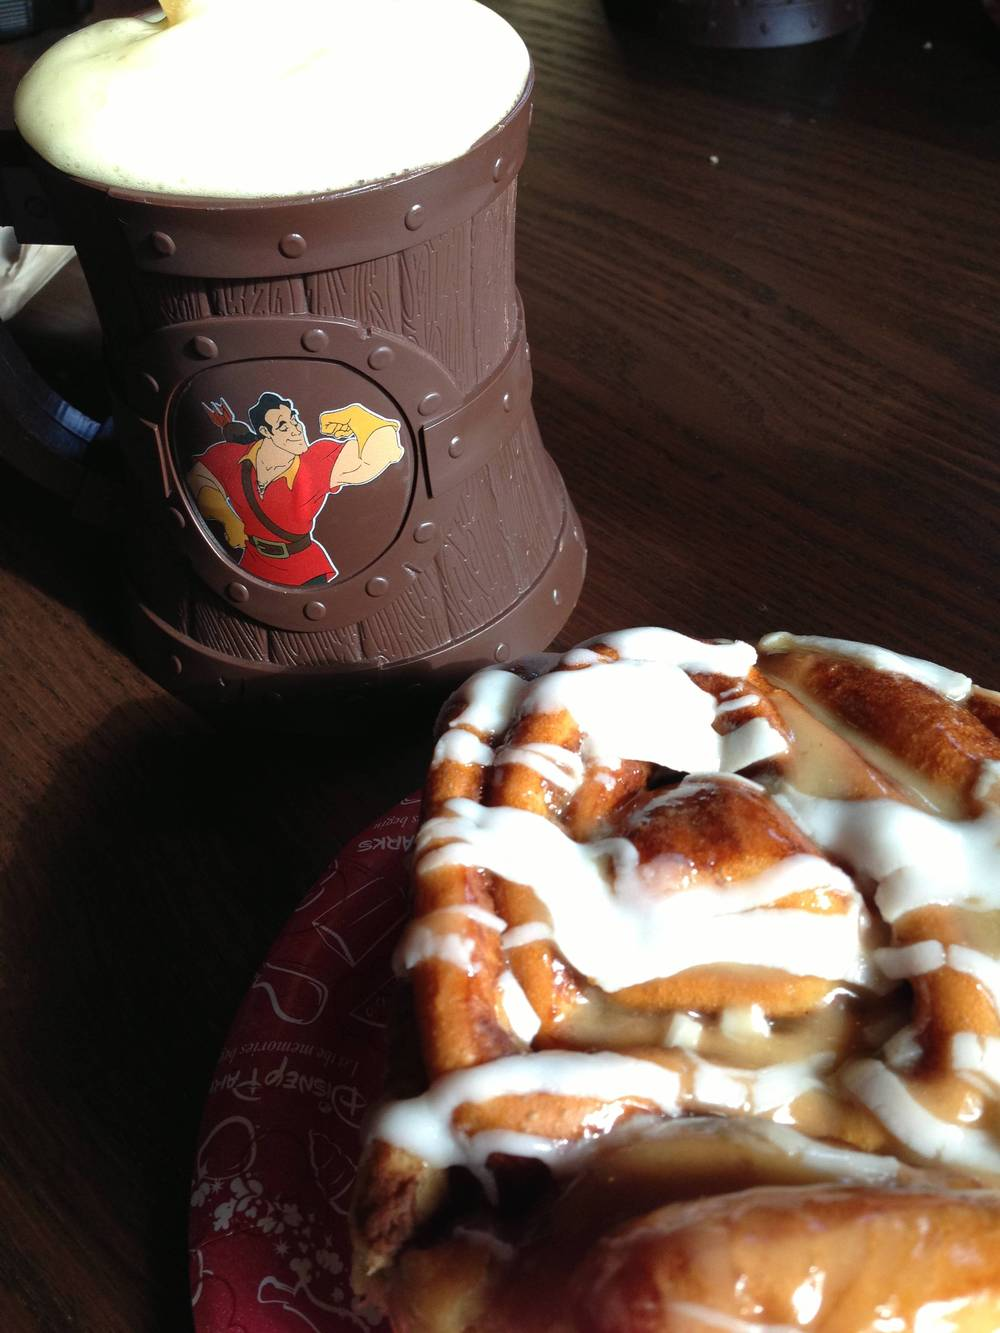 LeFou's Brew and a maple cinnamon rollfrom Gaston's Tavern.